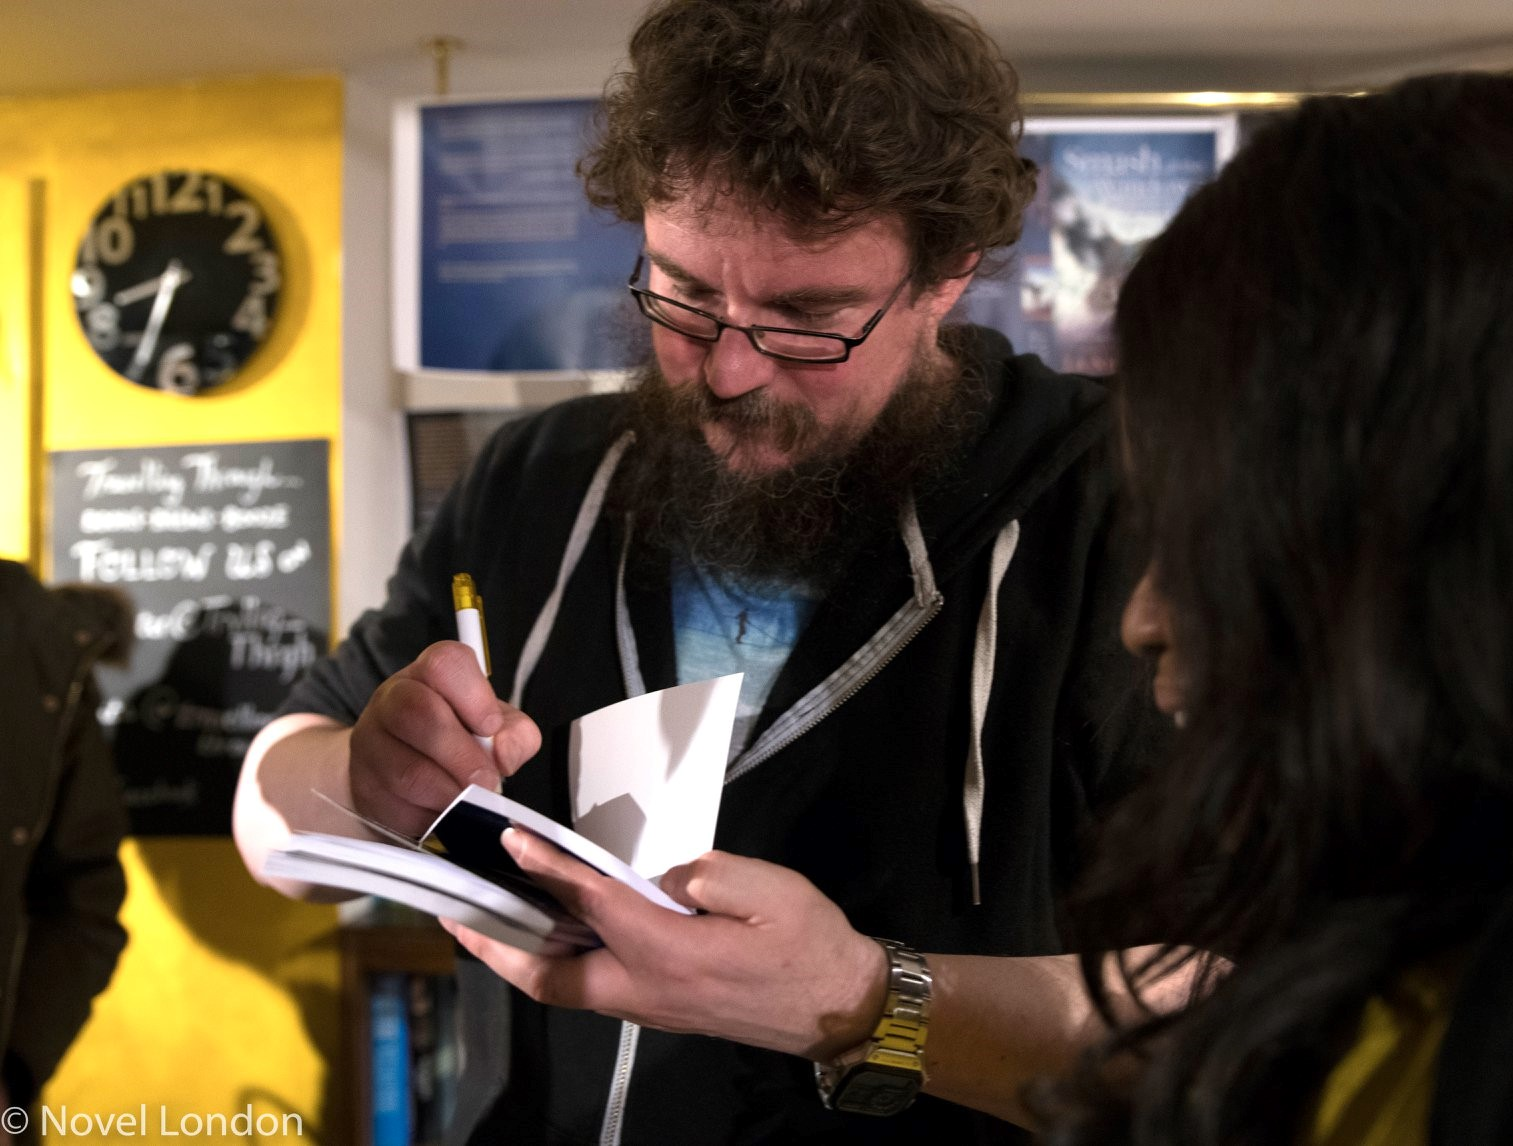 Launch of Rohan Quine's 'The Beasts of Electra Drive' & Dan Holloway's 'Kill Land' - 8 (photo by Novel London)